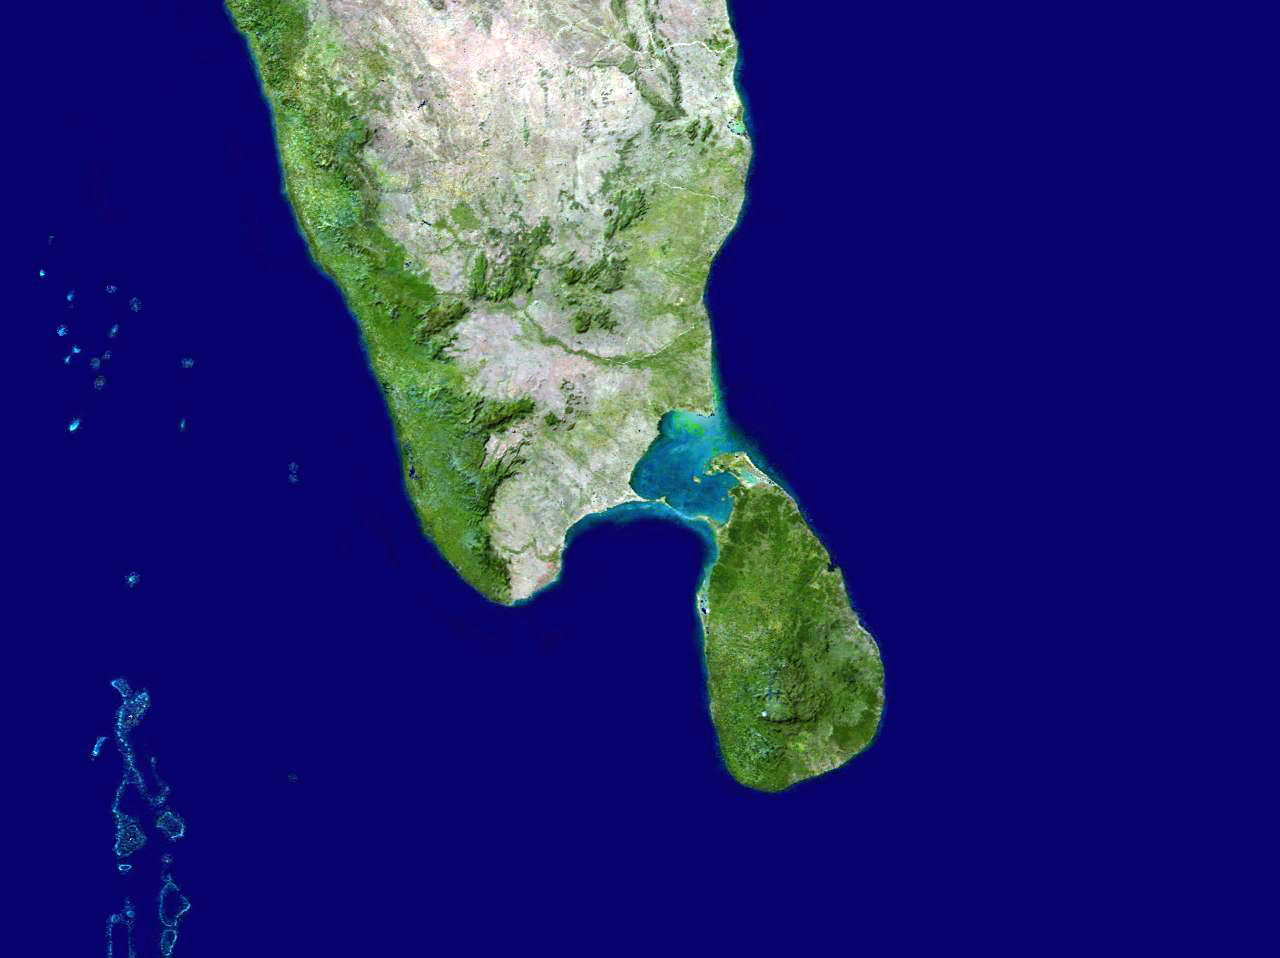 Setelight Map Of India.Large Satellite Map Of South India And Sri Lanka Sri Lanka Asia